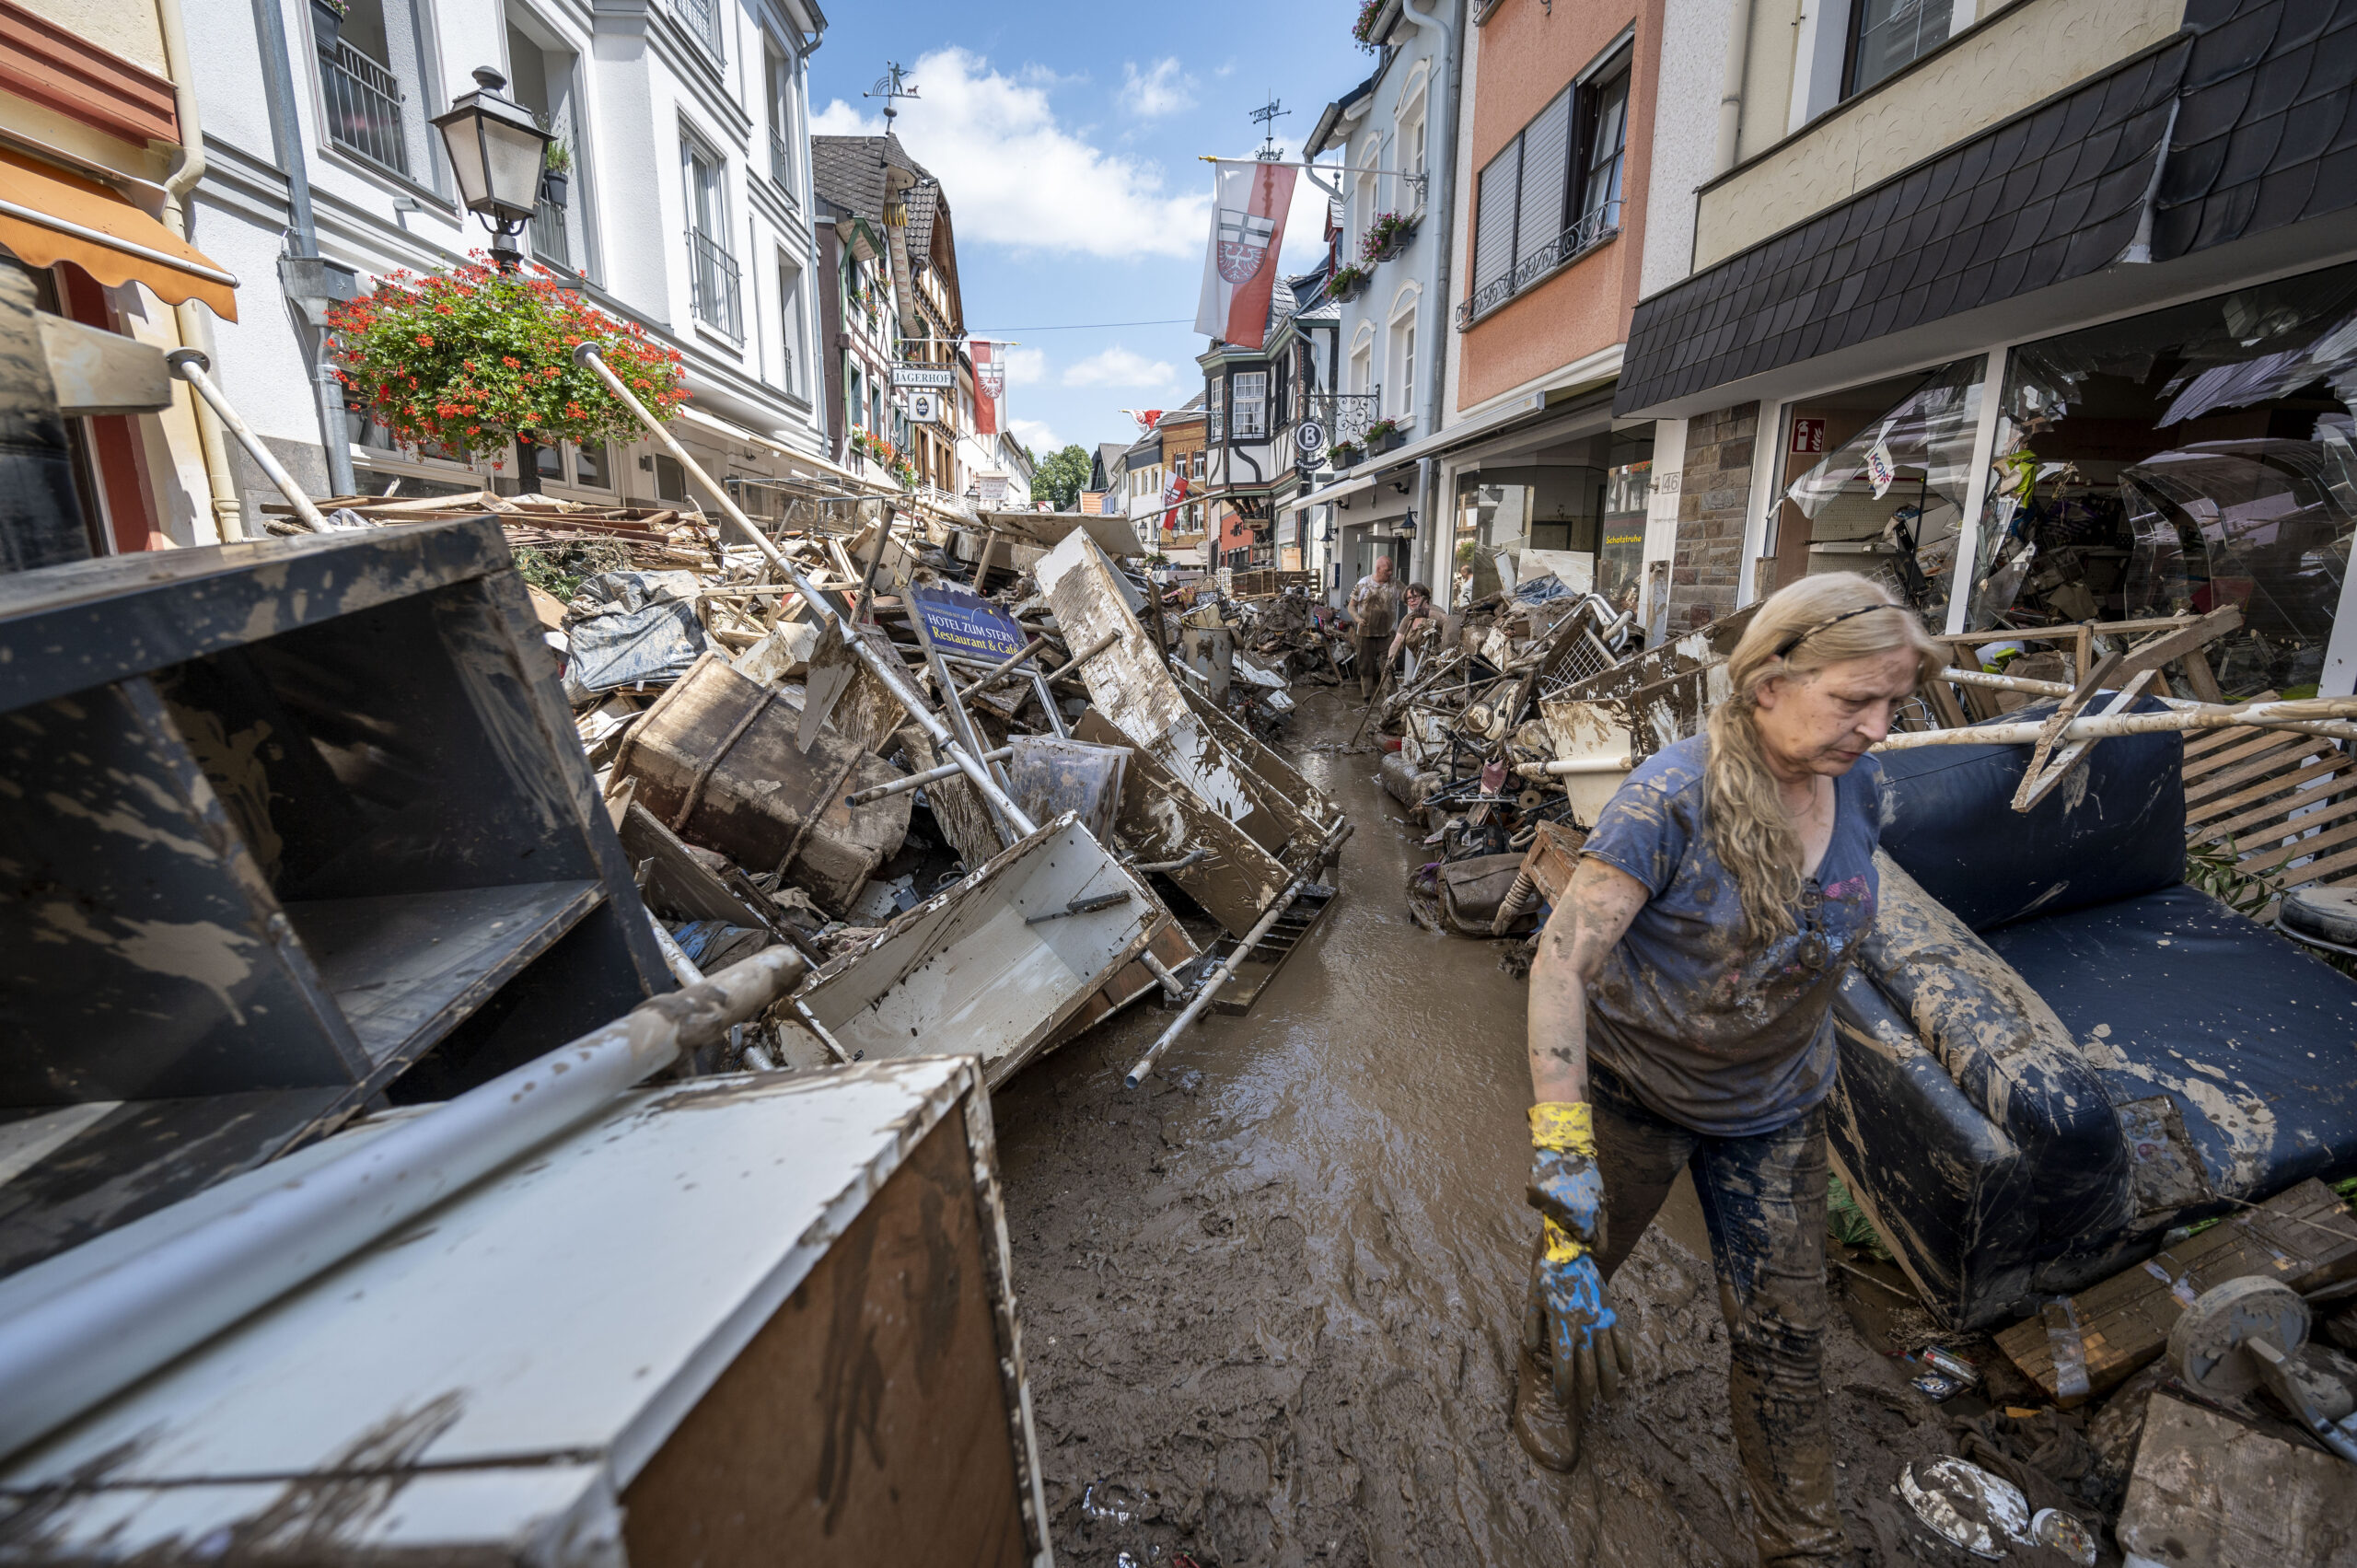 Volunteers and residents start the clean up process at their shops and restaurants following severe flash flooding on July 18, 2021 in Bad Neuenahr-Ahrweiler, Germany. Credit: Thomas Lohnes/Getty Images